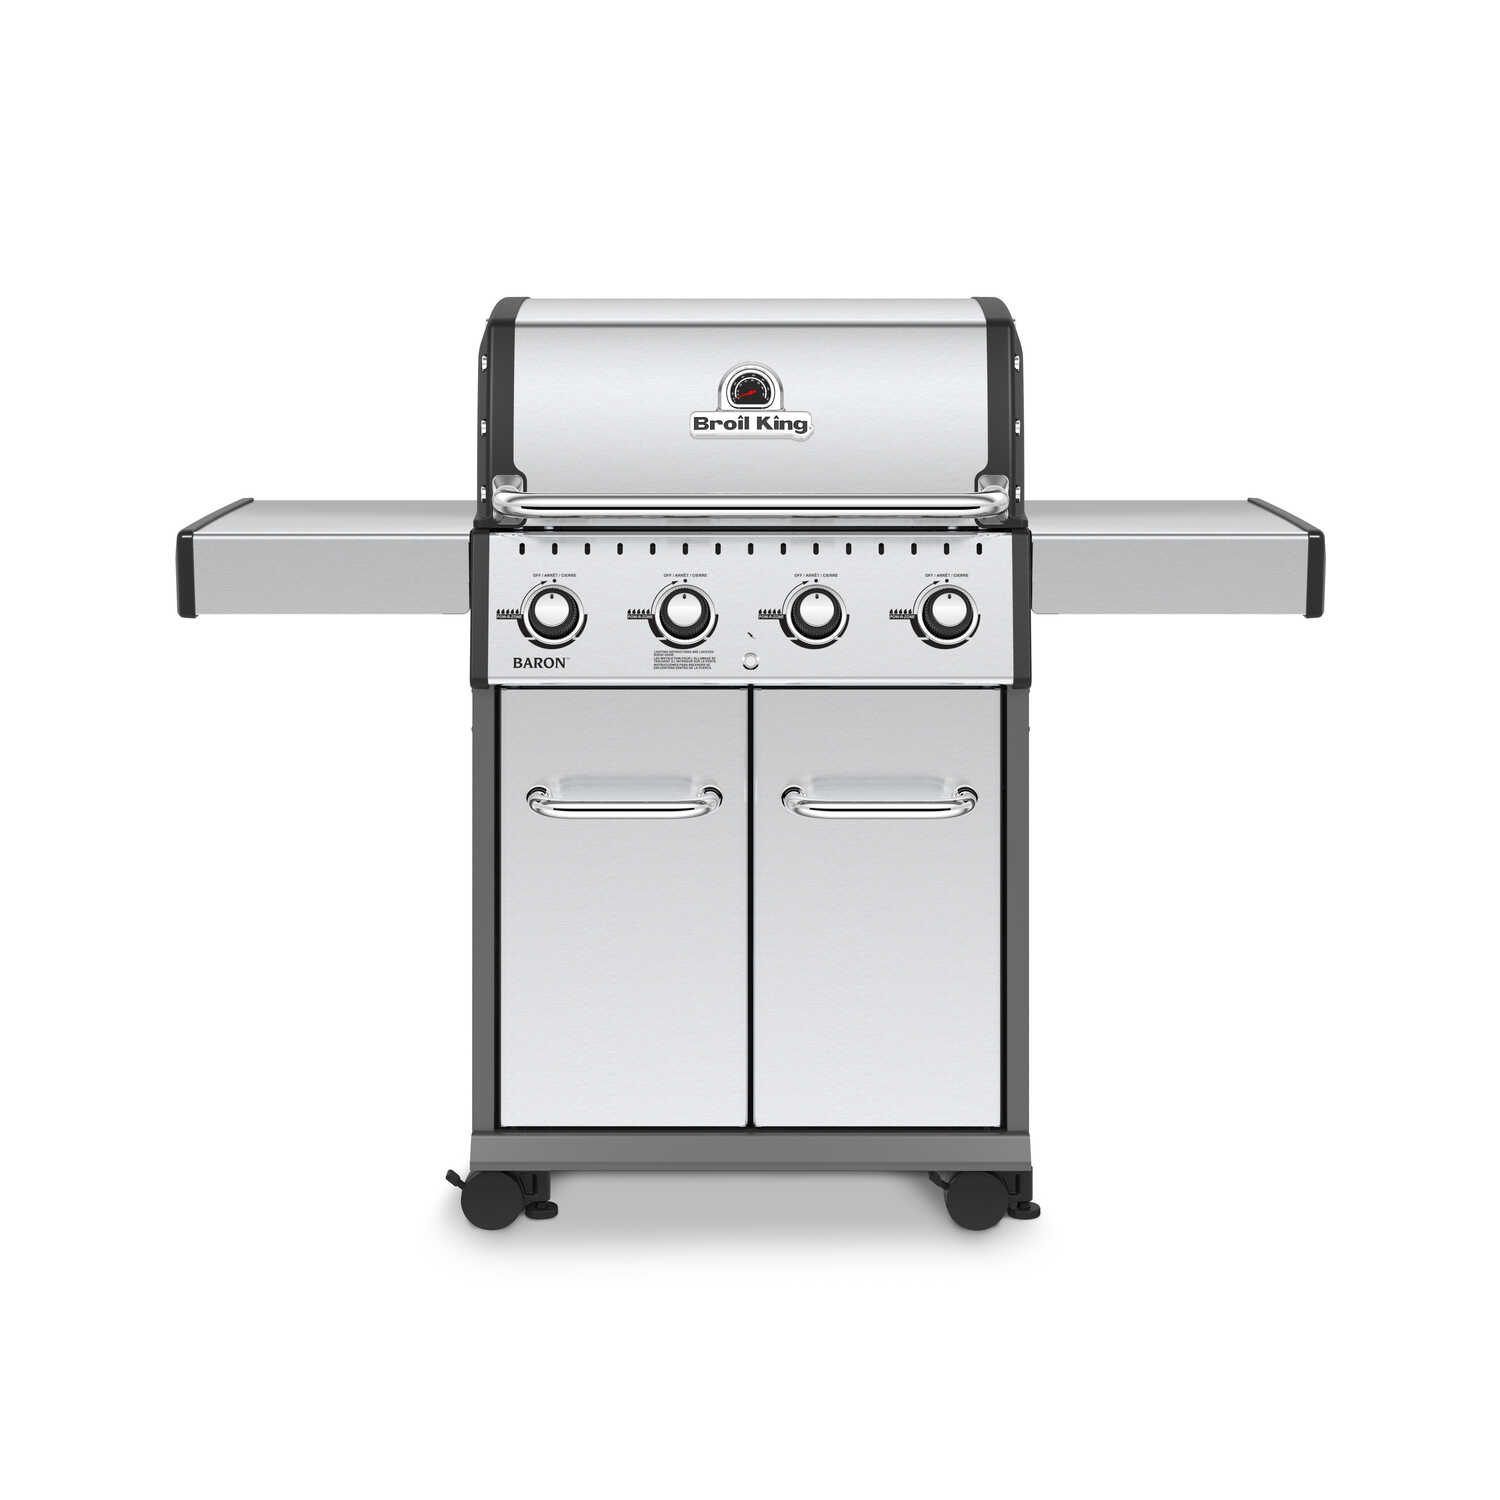 Broil King  Baron PRO Series  4 burners Propane  Grill  Stainless Steel  40000 BTU